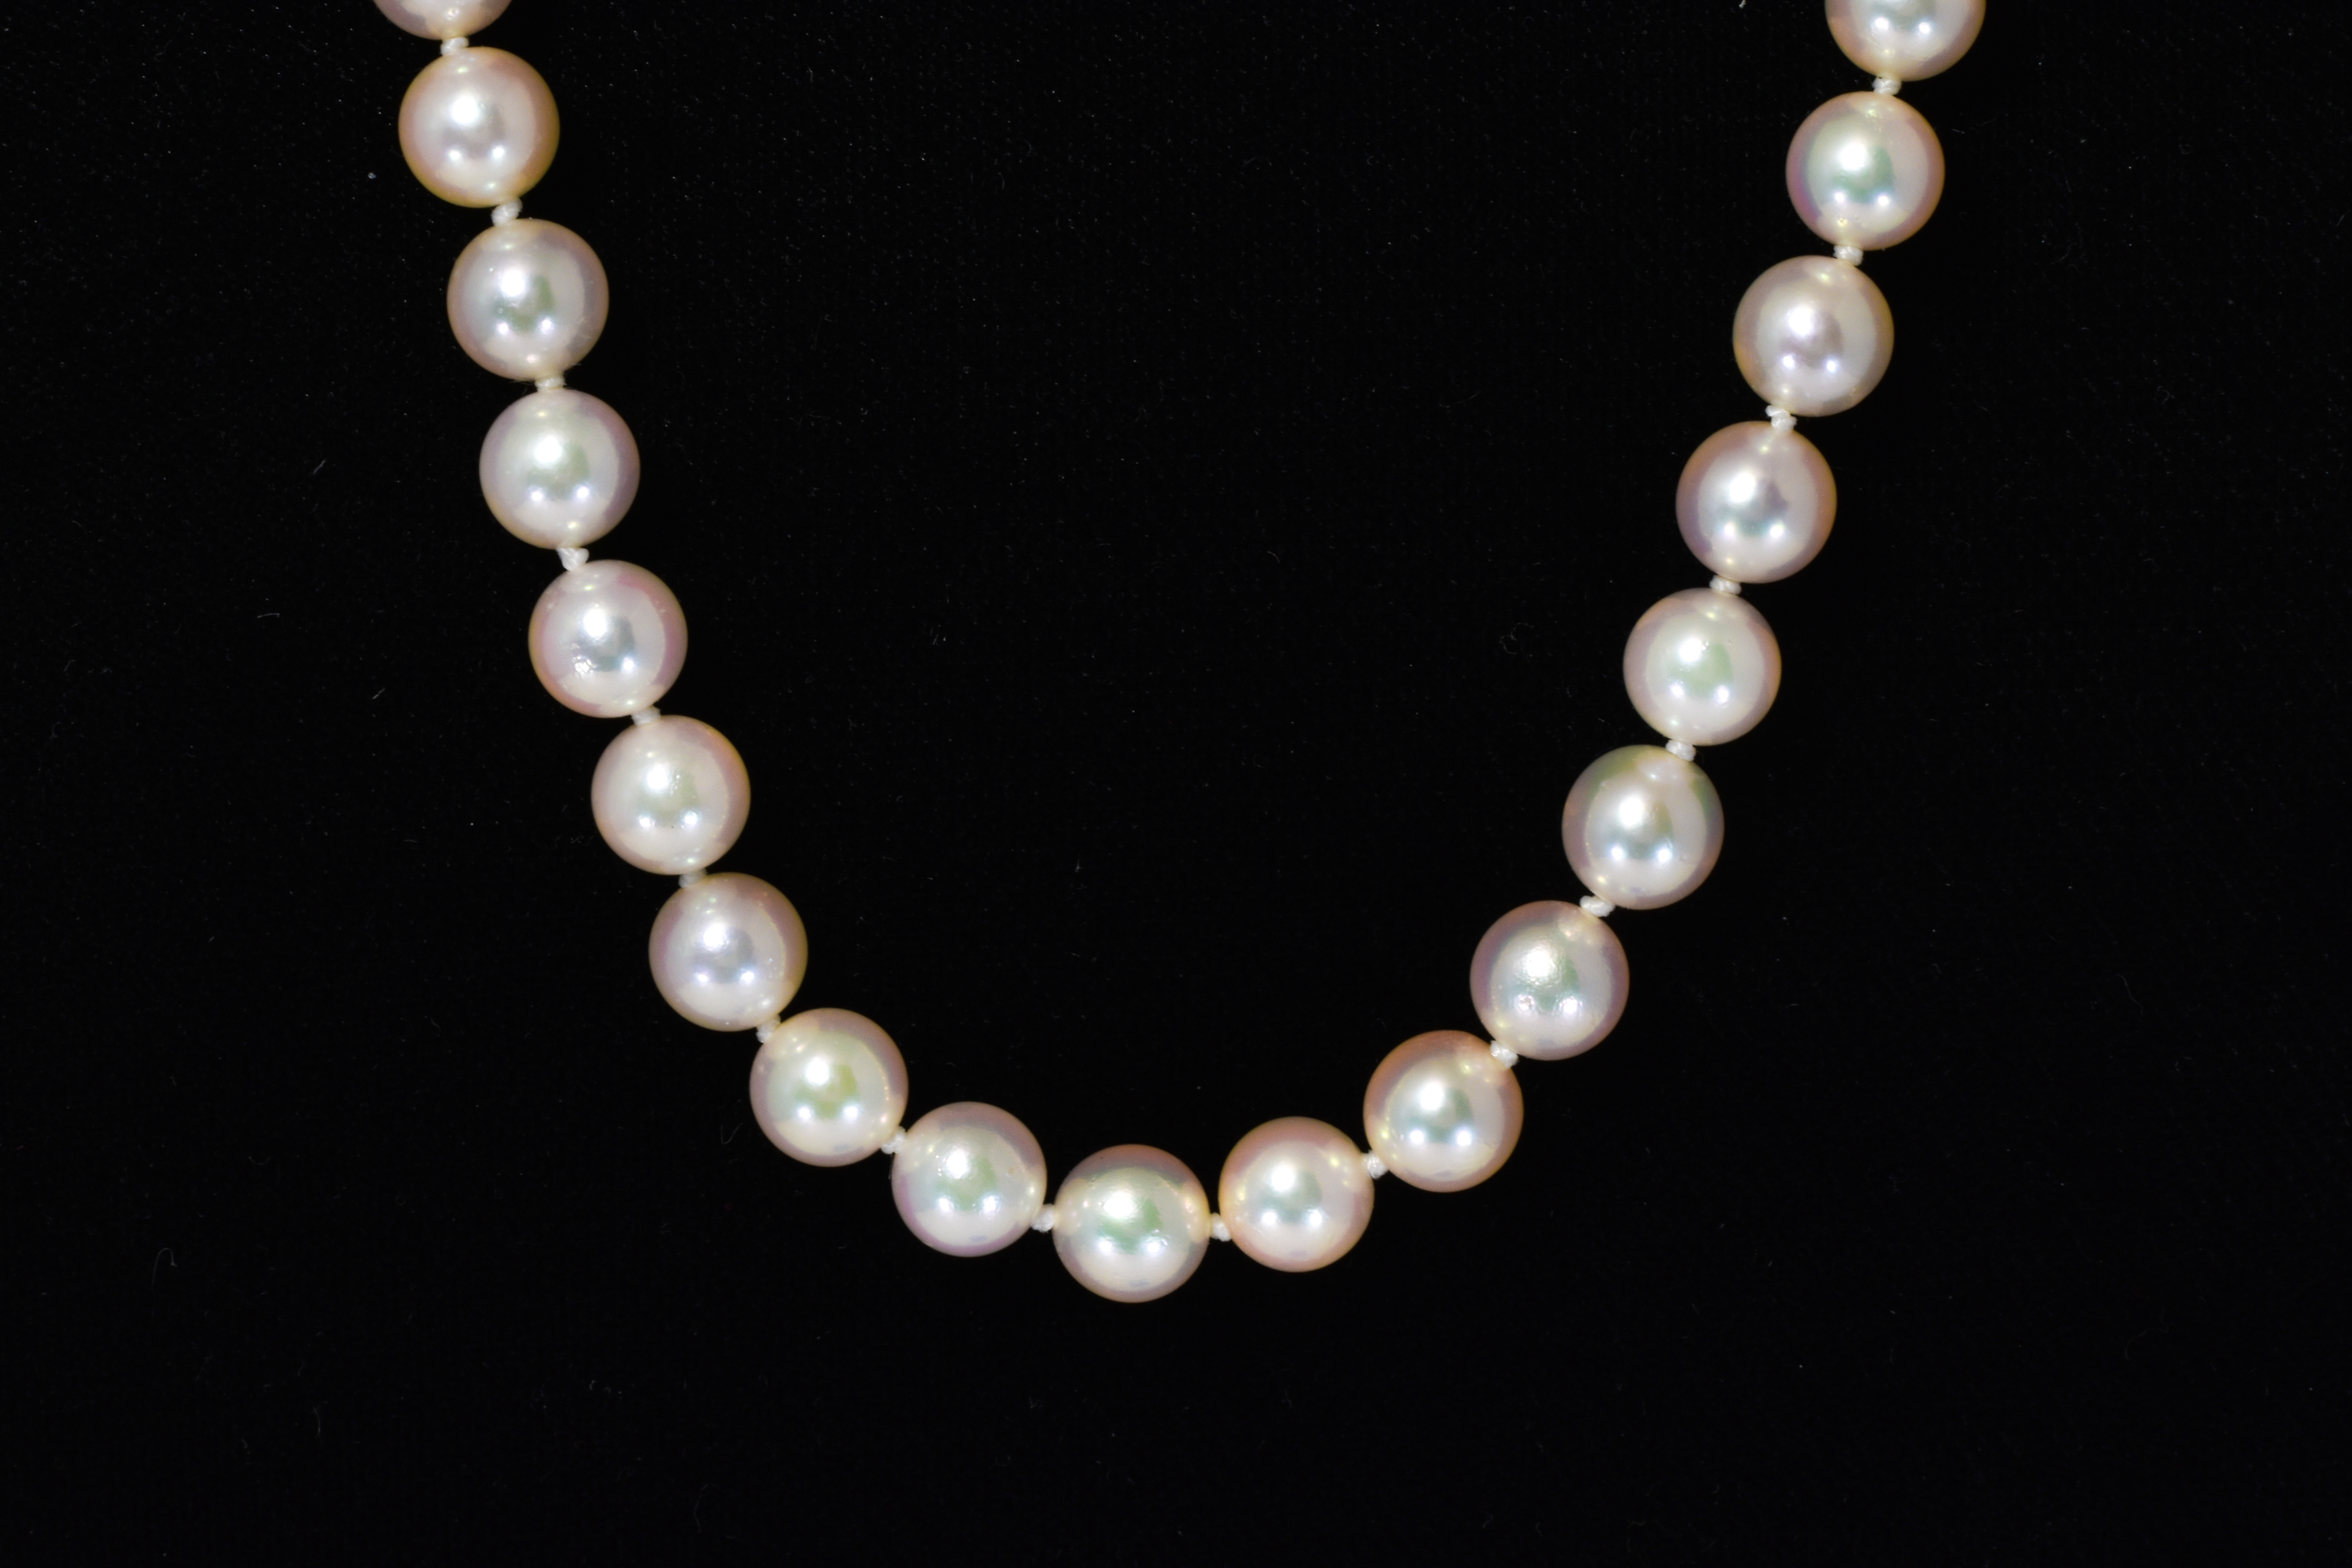 Pearl Strand 20 Inch Necklace with 14 kt White Gold Clasp 6.0 mm-6.5 mm